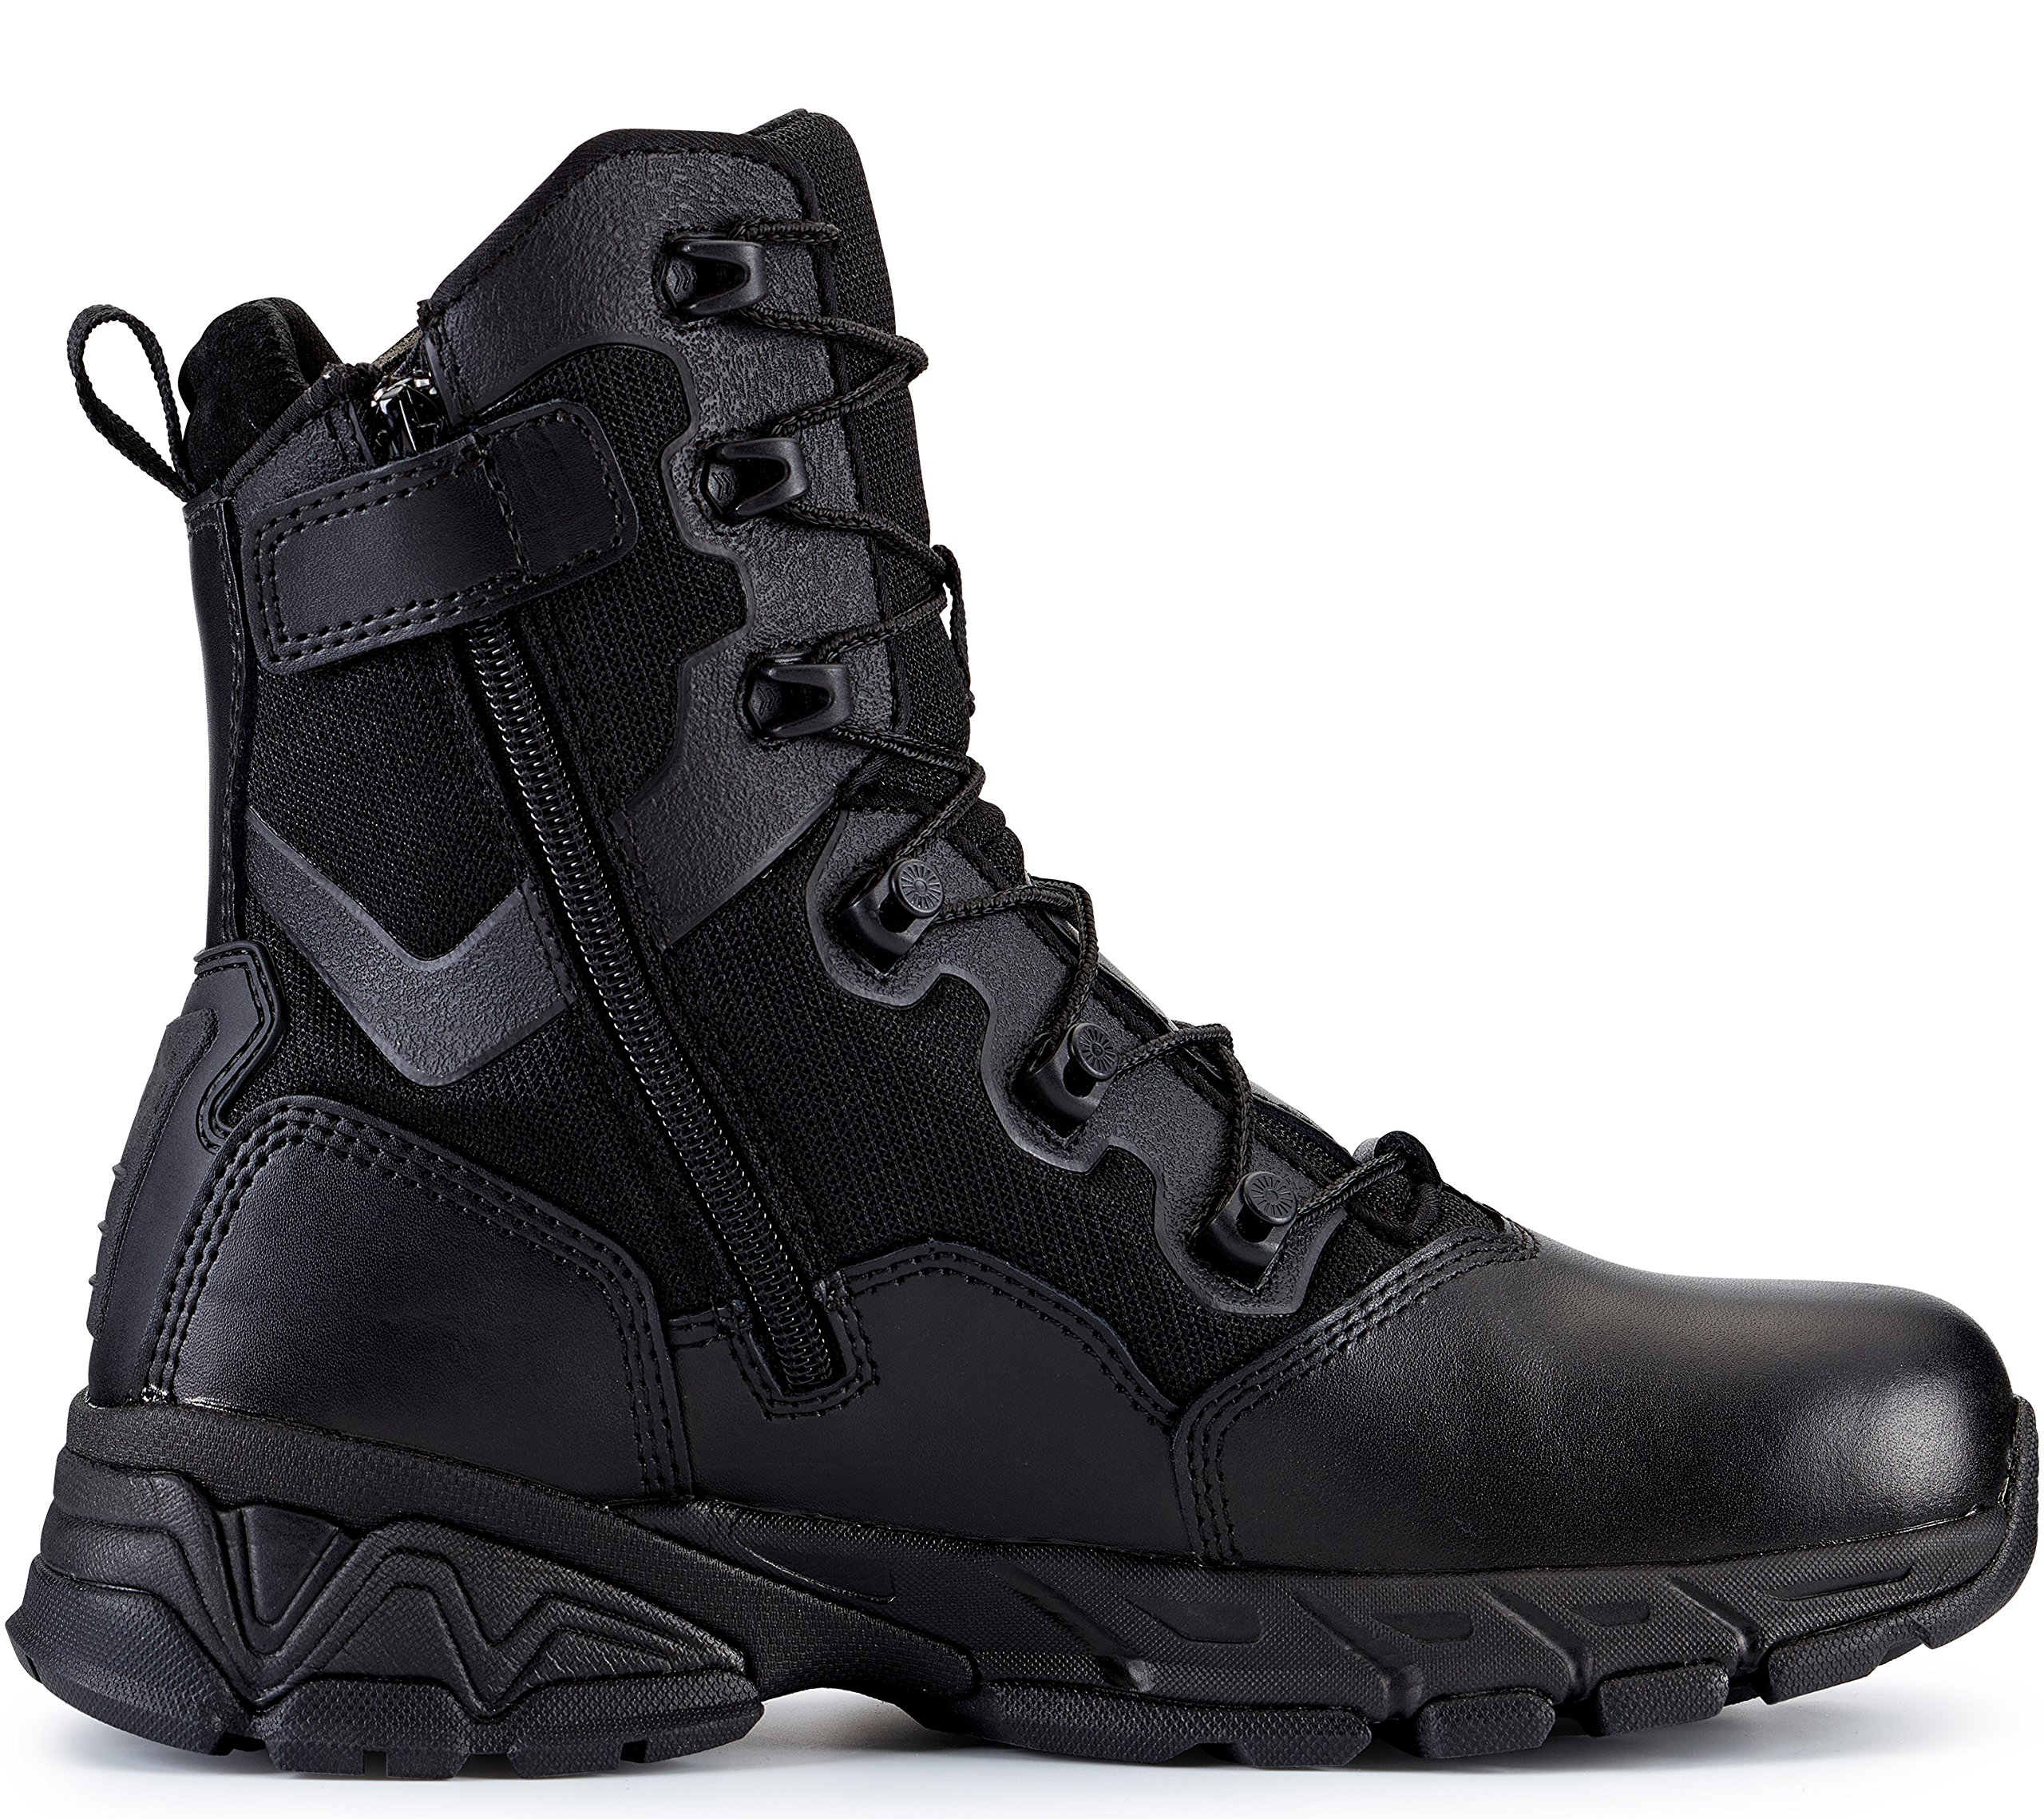 Maelstrom TAC ELITE Men's 8'' Black Waterproof Boots With Side Zipper for Military Tactical Work Security | Waterproof Athletic Stylish Comfortable Lightweight Boots | One year Manufacturer's Warranty, Black, Size 10W